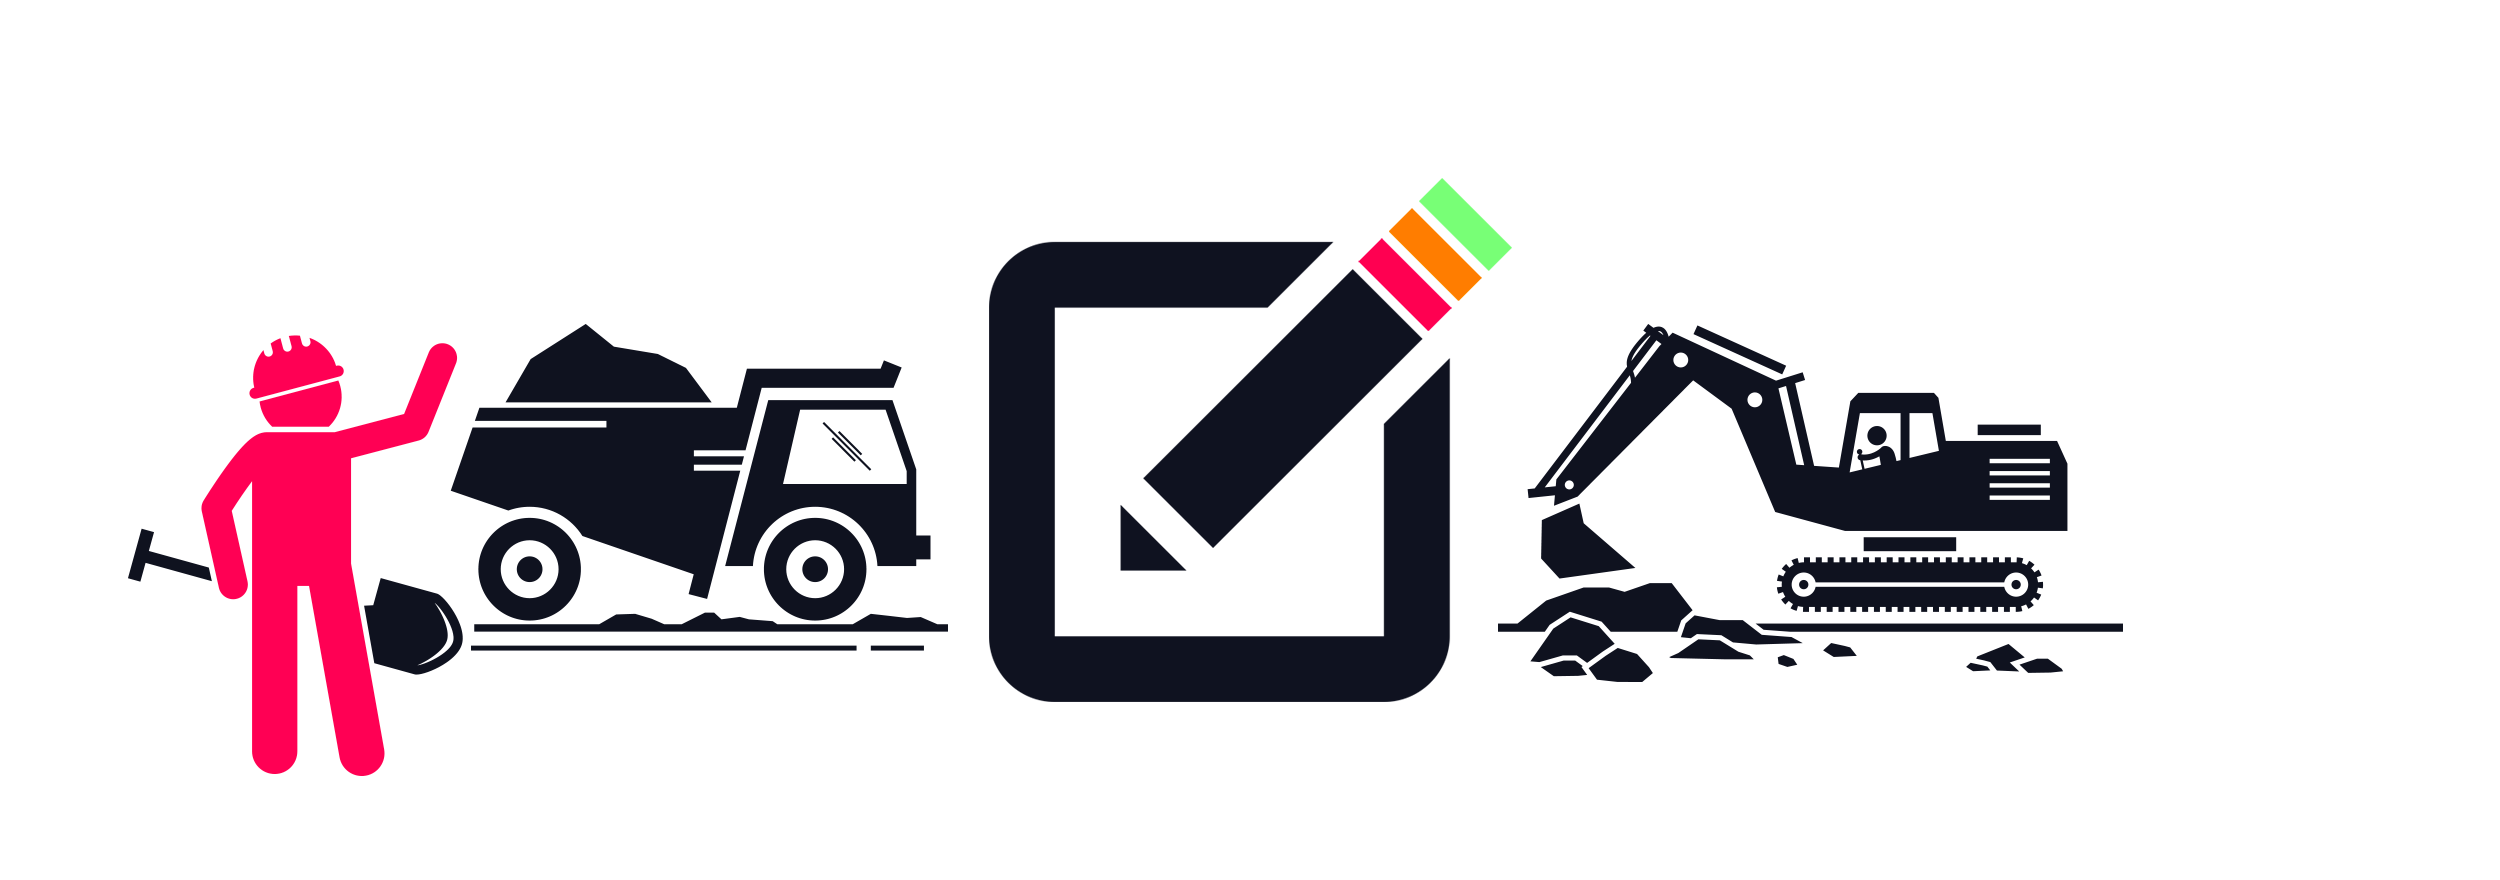 Our Content Publishing Schedule Isn't Working. Here's How We're Fixing It.